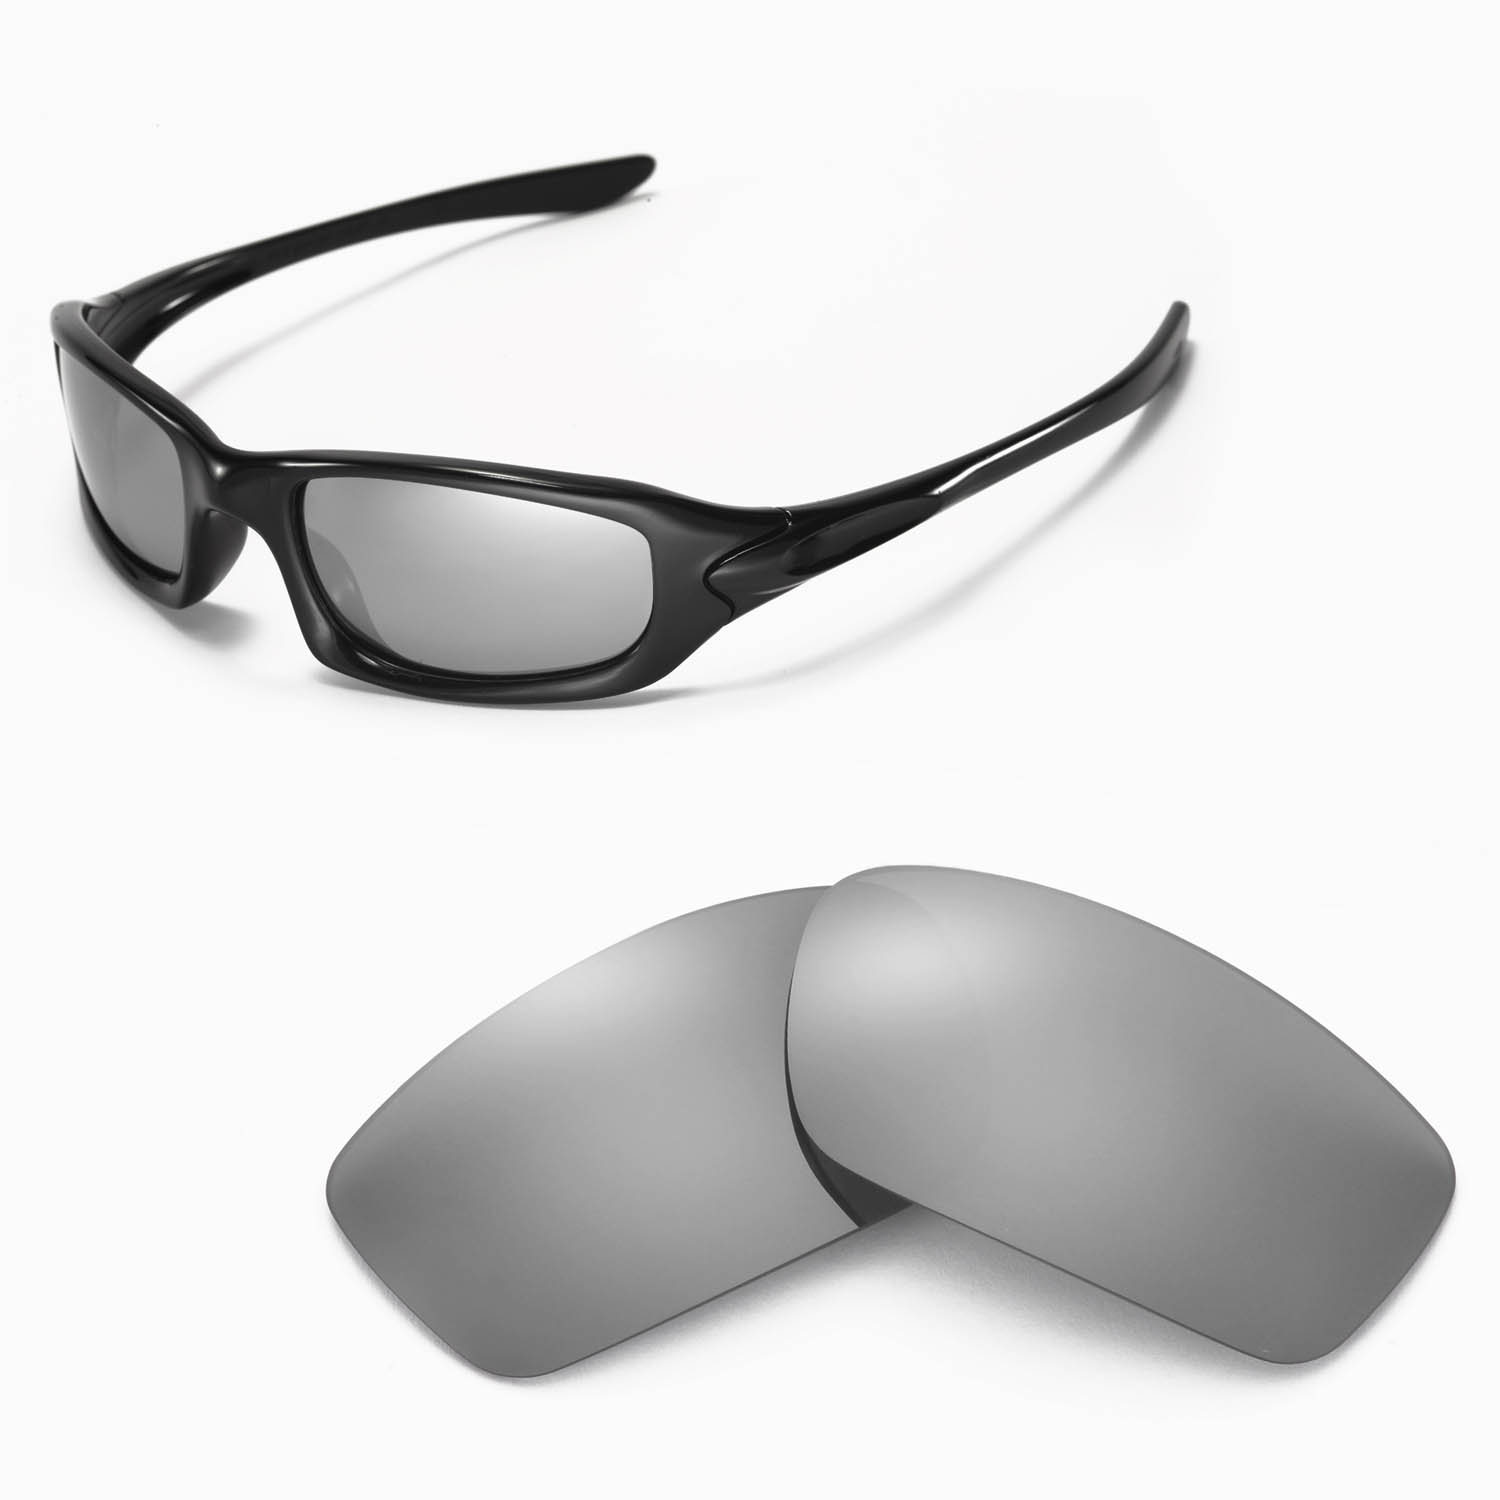 9bacbcca1e Details about New Walleva Polarized Titanium Lenses For Oakley Fives 4.0